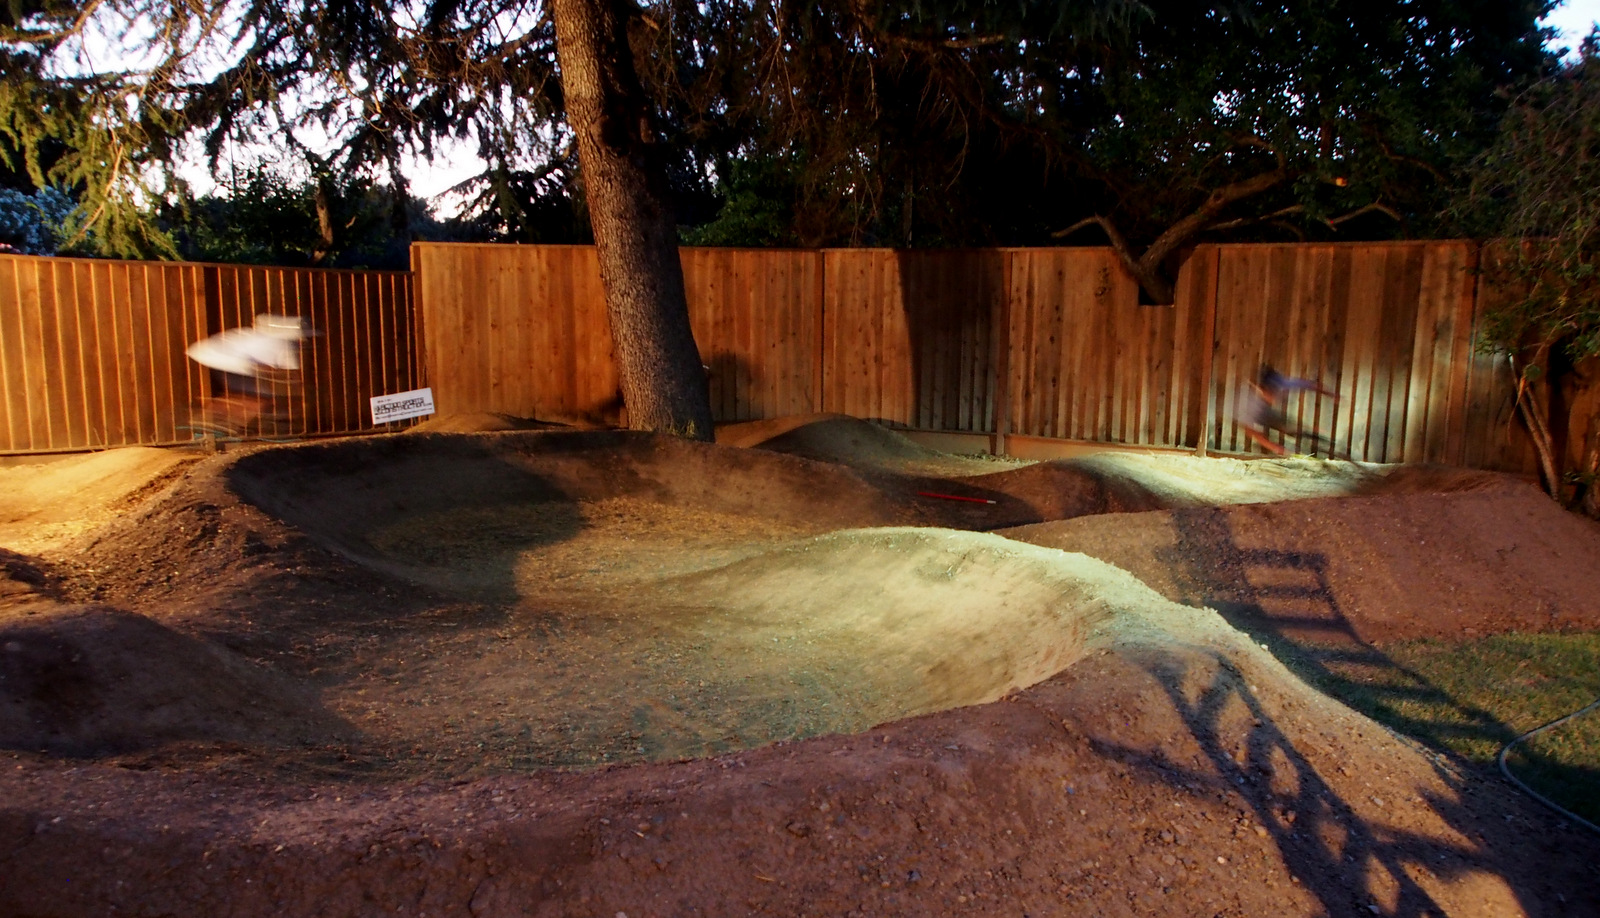 Backyard pump track at night